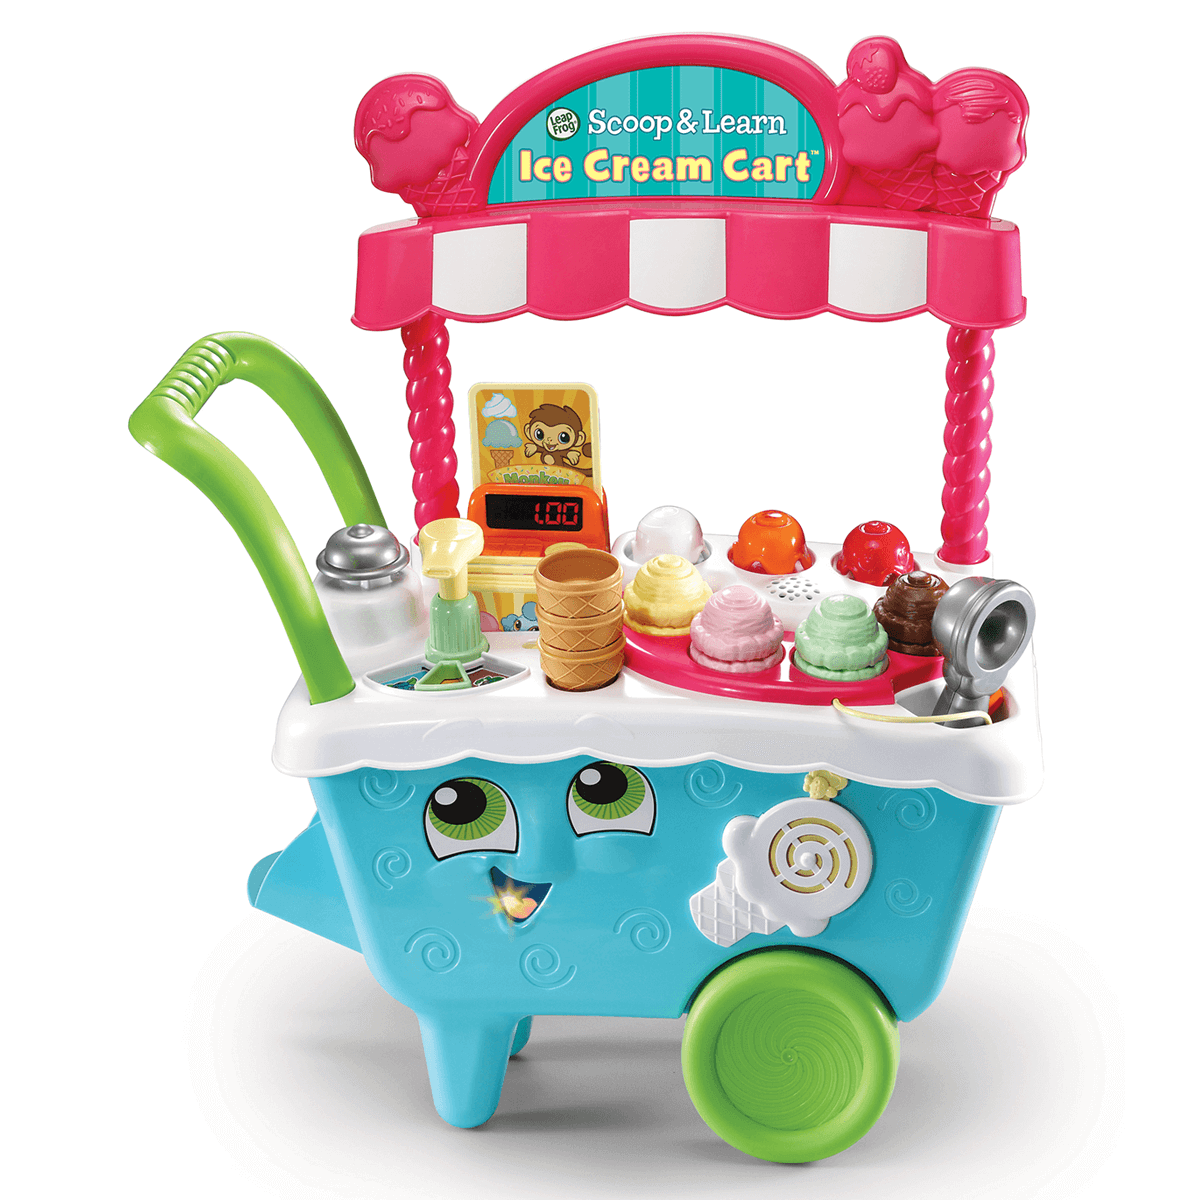 LeapFrog Scoop & Learn Ice Cream Cart from Early Learning Center